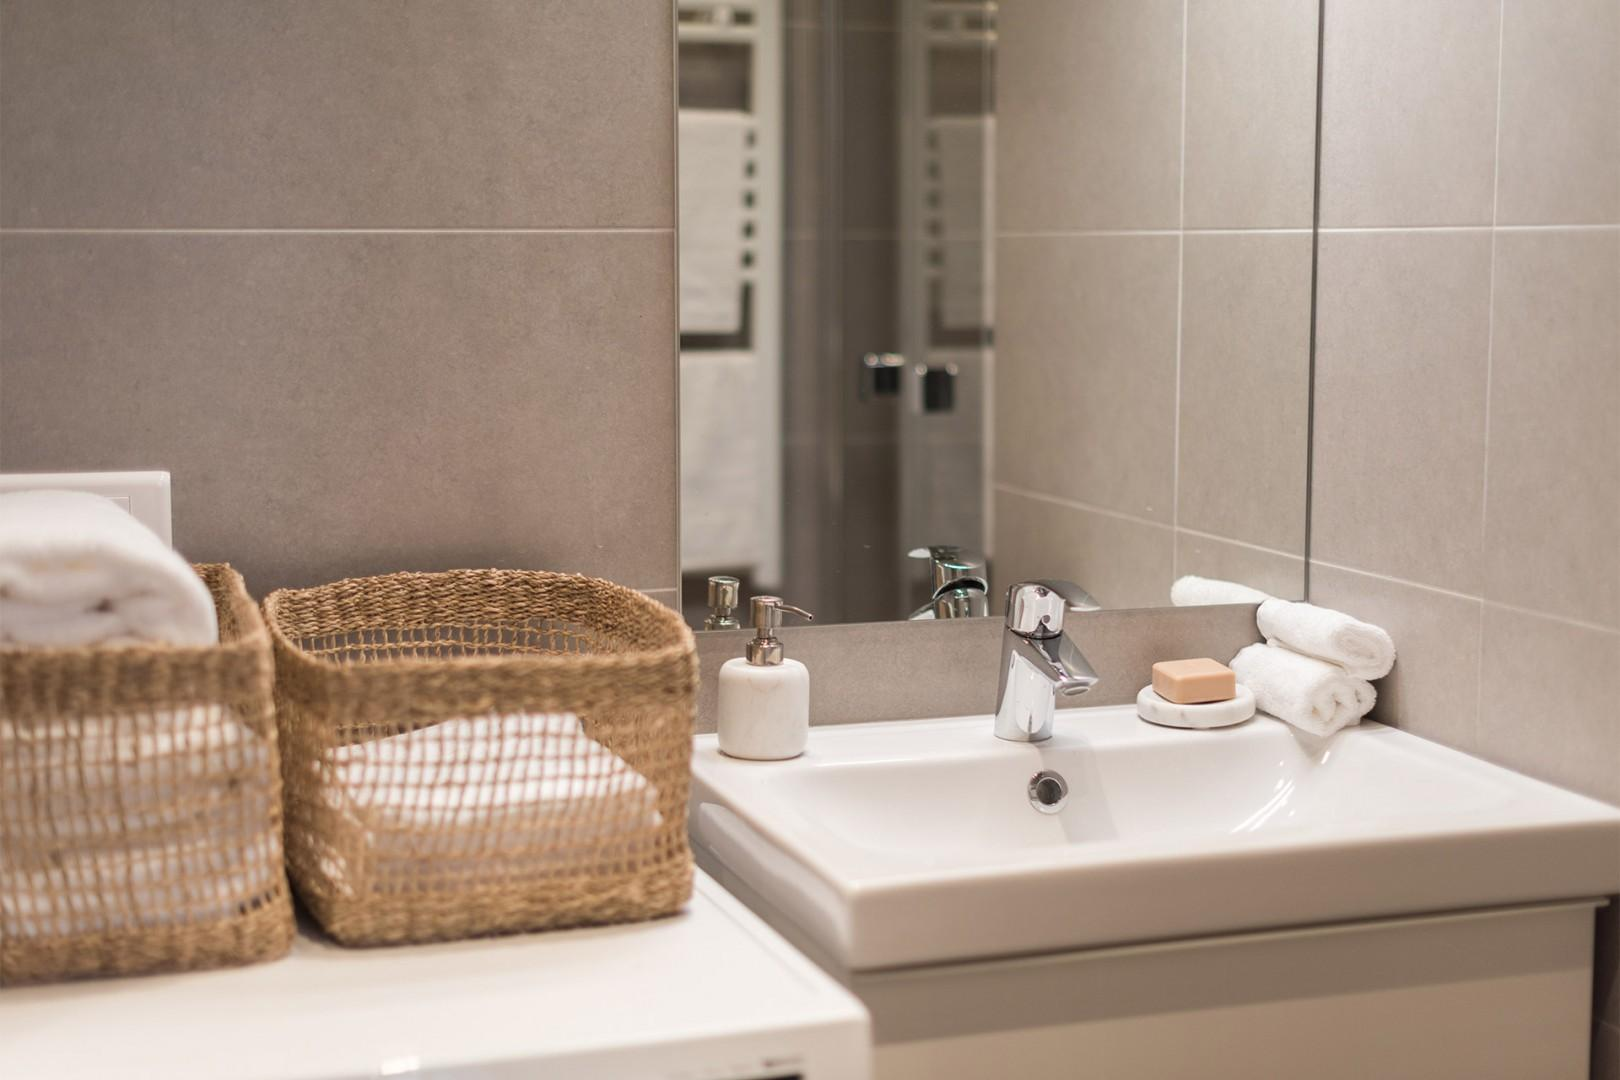 Pamper yourself in the modern and stylish bathroom.